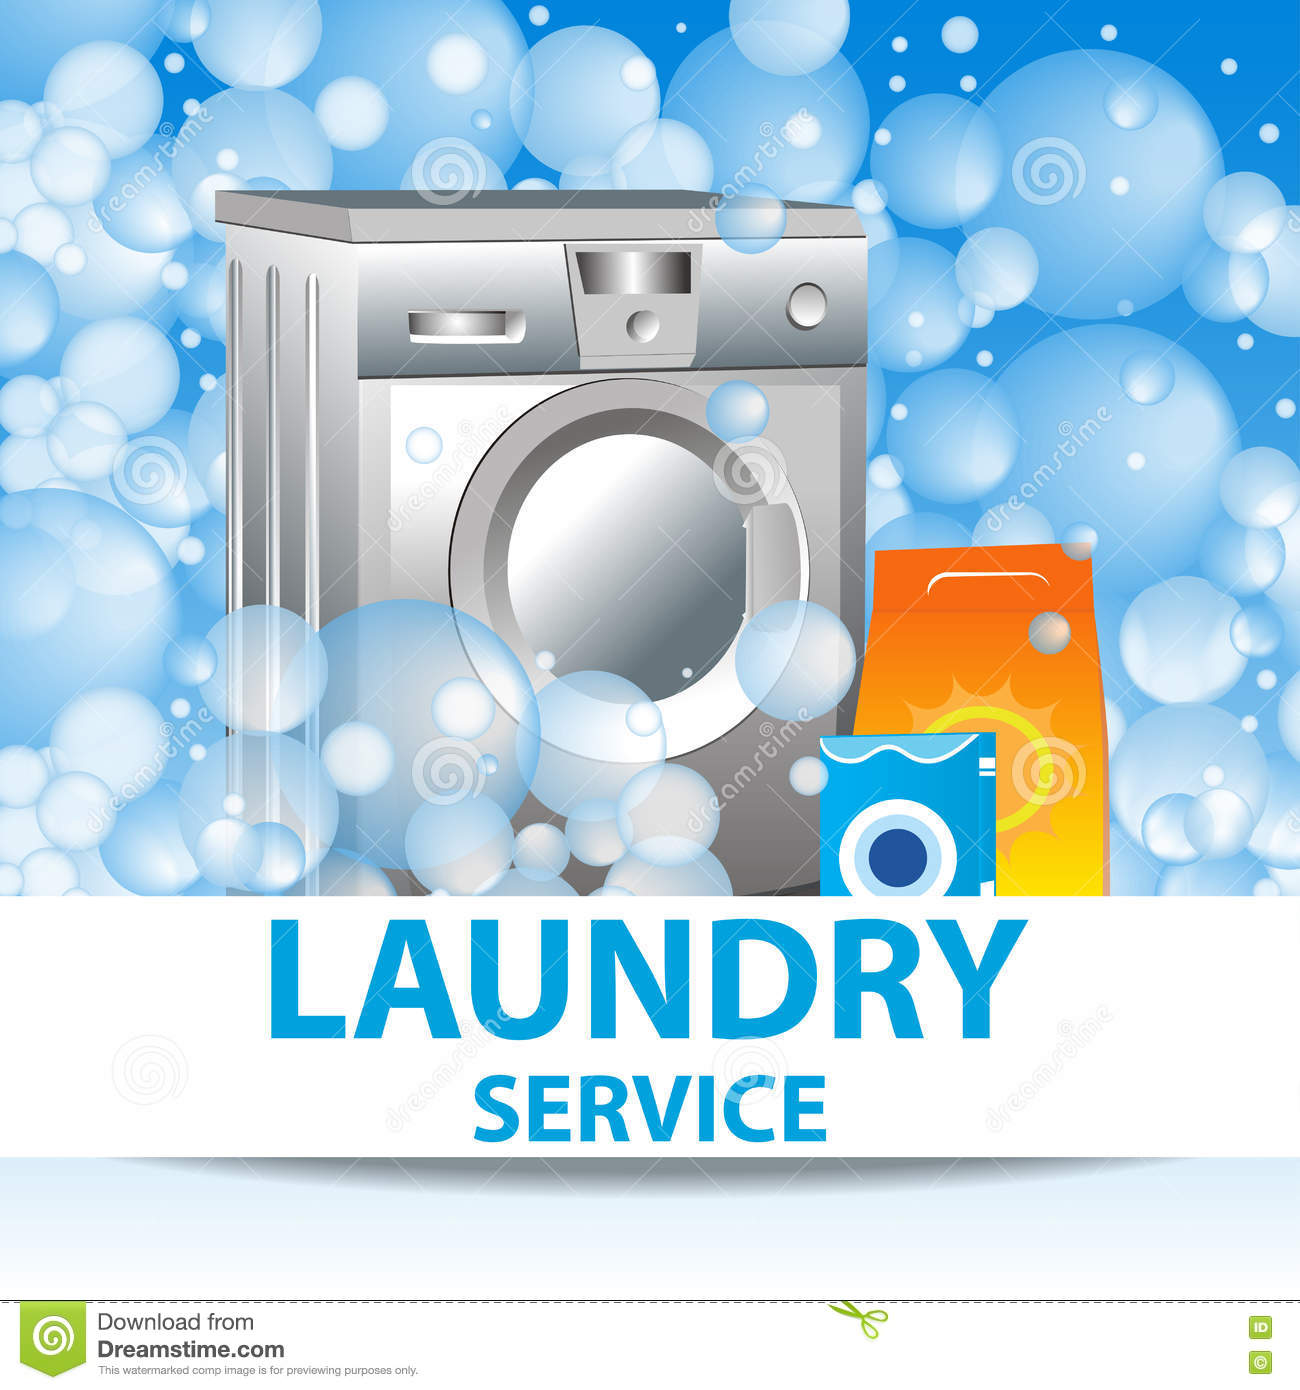 laundry services flyer template stock photography image  laundry service poster template for house cleaning services stock image